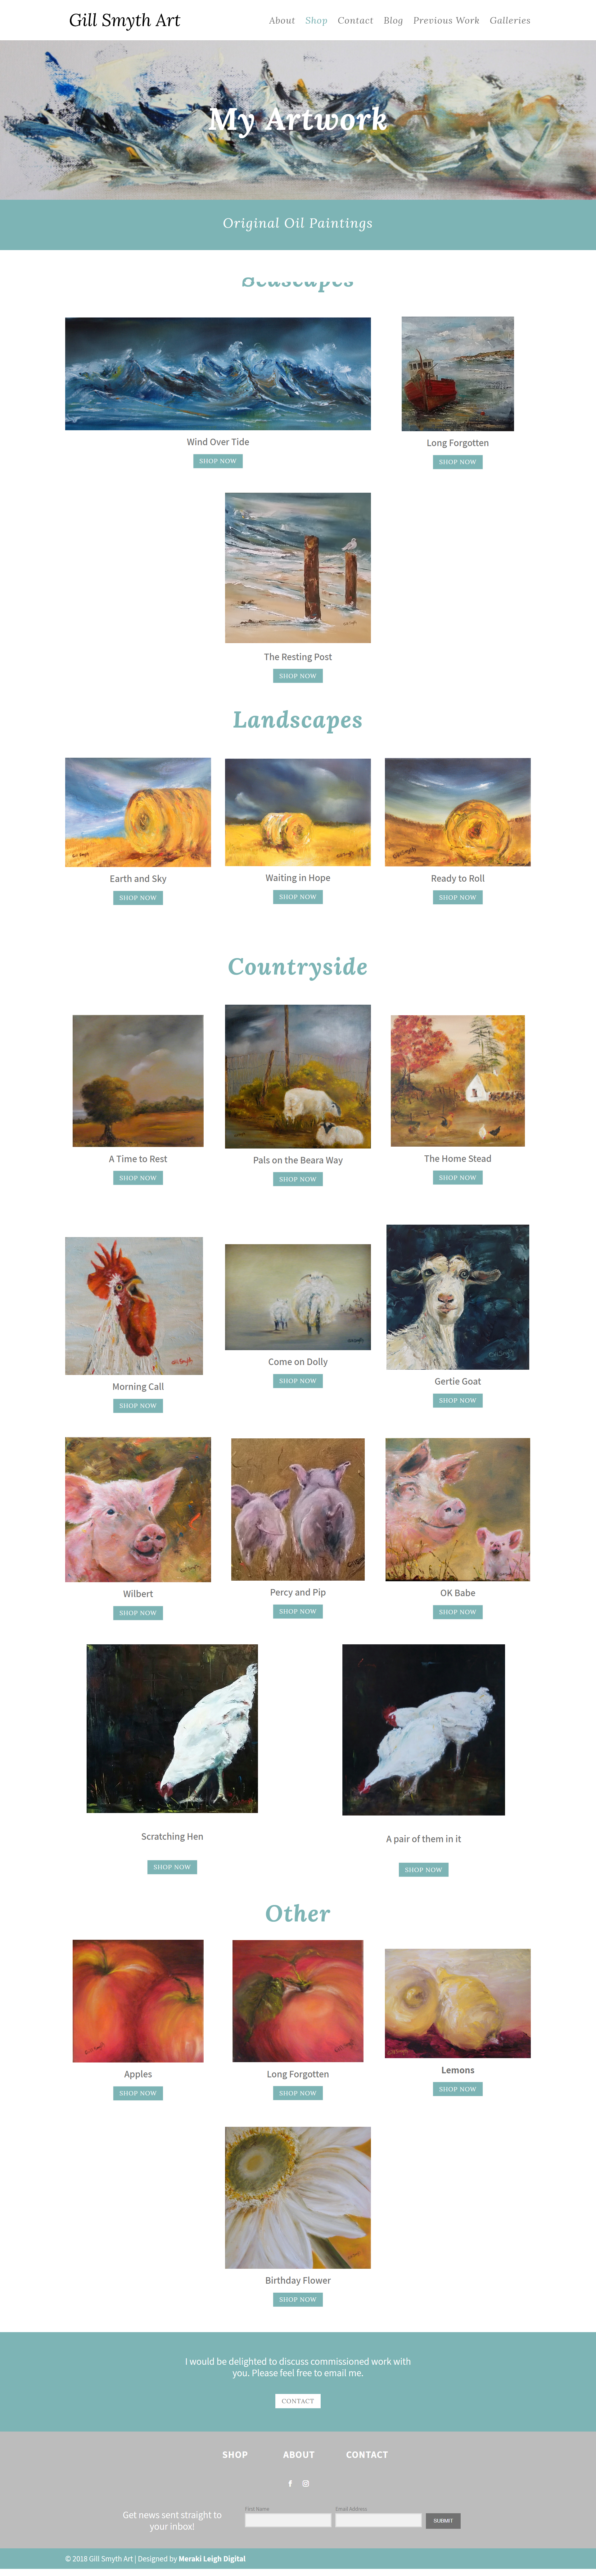 Kristen Leigh | WordPress Web Design Studio | Gill Smyth Art Portfolio Piece | Shop Page